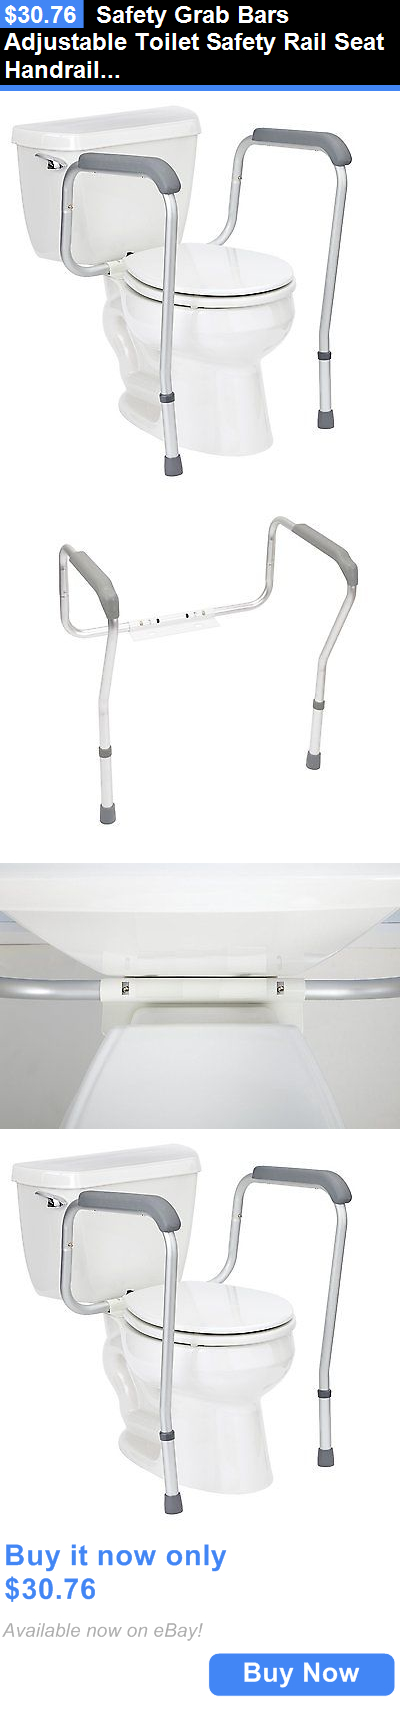 Other Accessibility Fixtures: Safety Grab Bars Adjustable Toilet ...